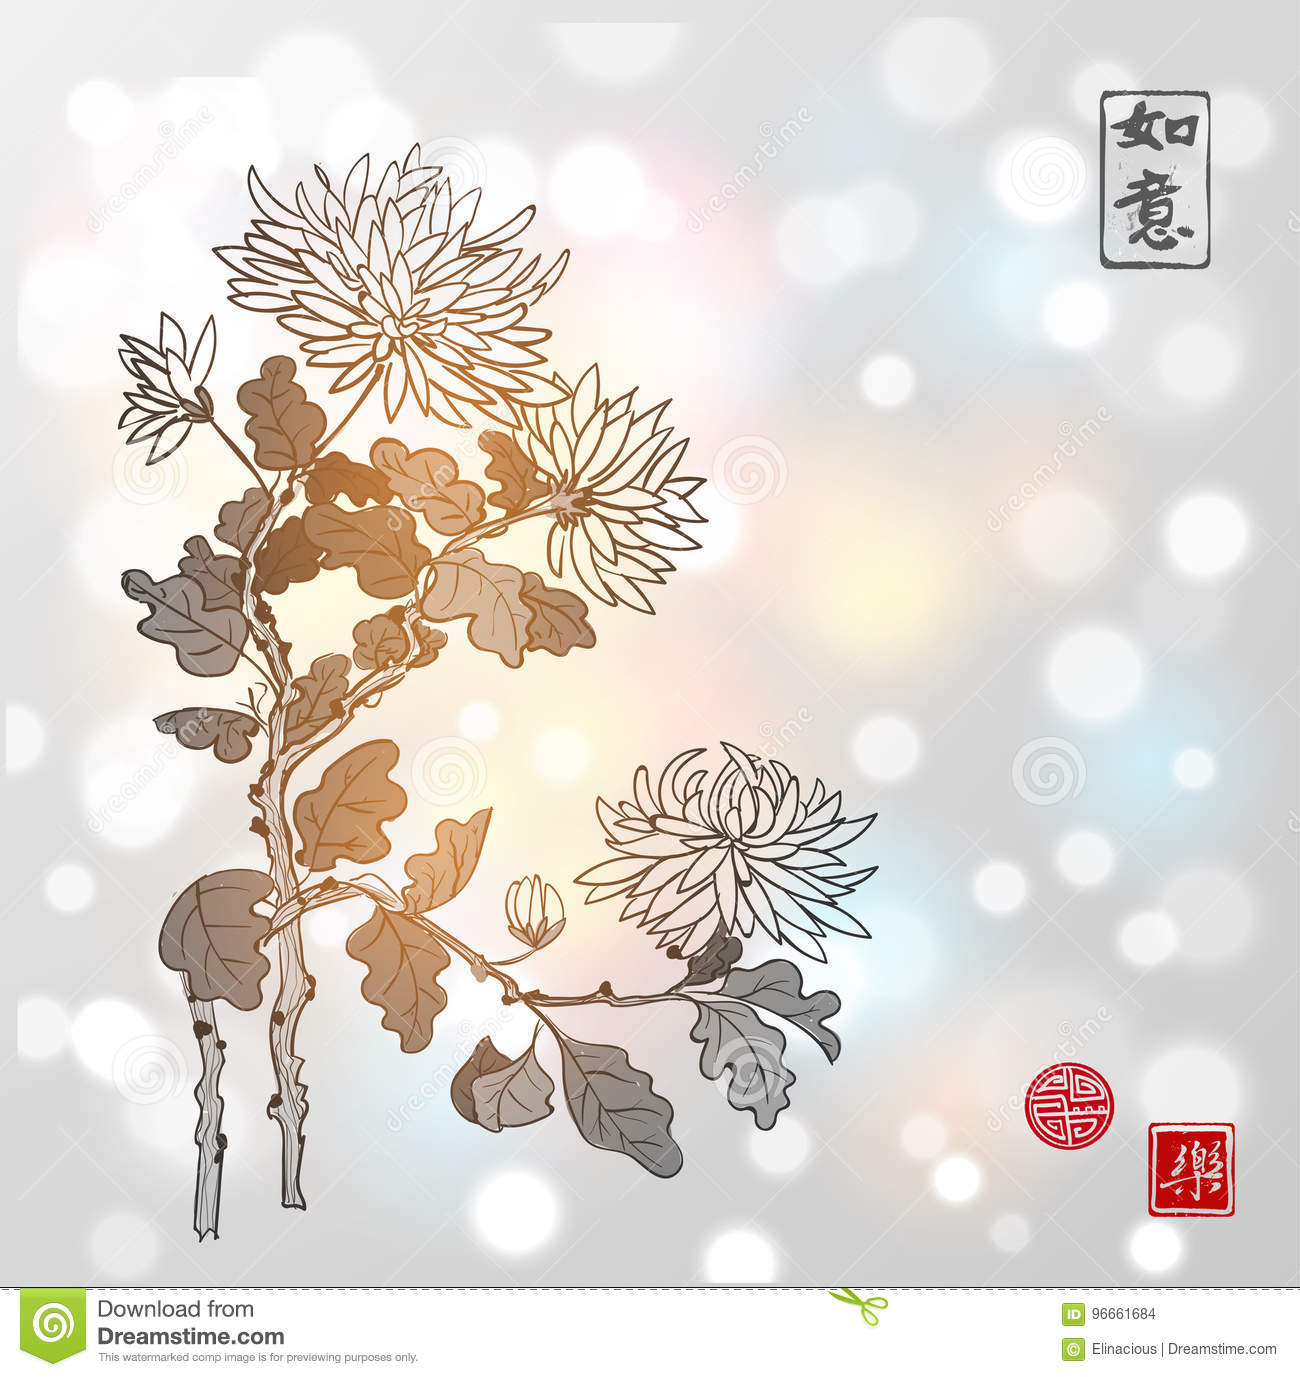 Chrysanthemum flowers in oriental style on white glowing background. Contains hieroglyphs - beauty, dreams come true